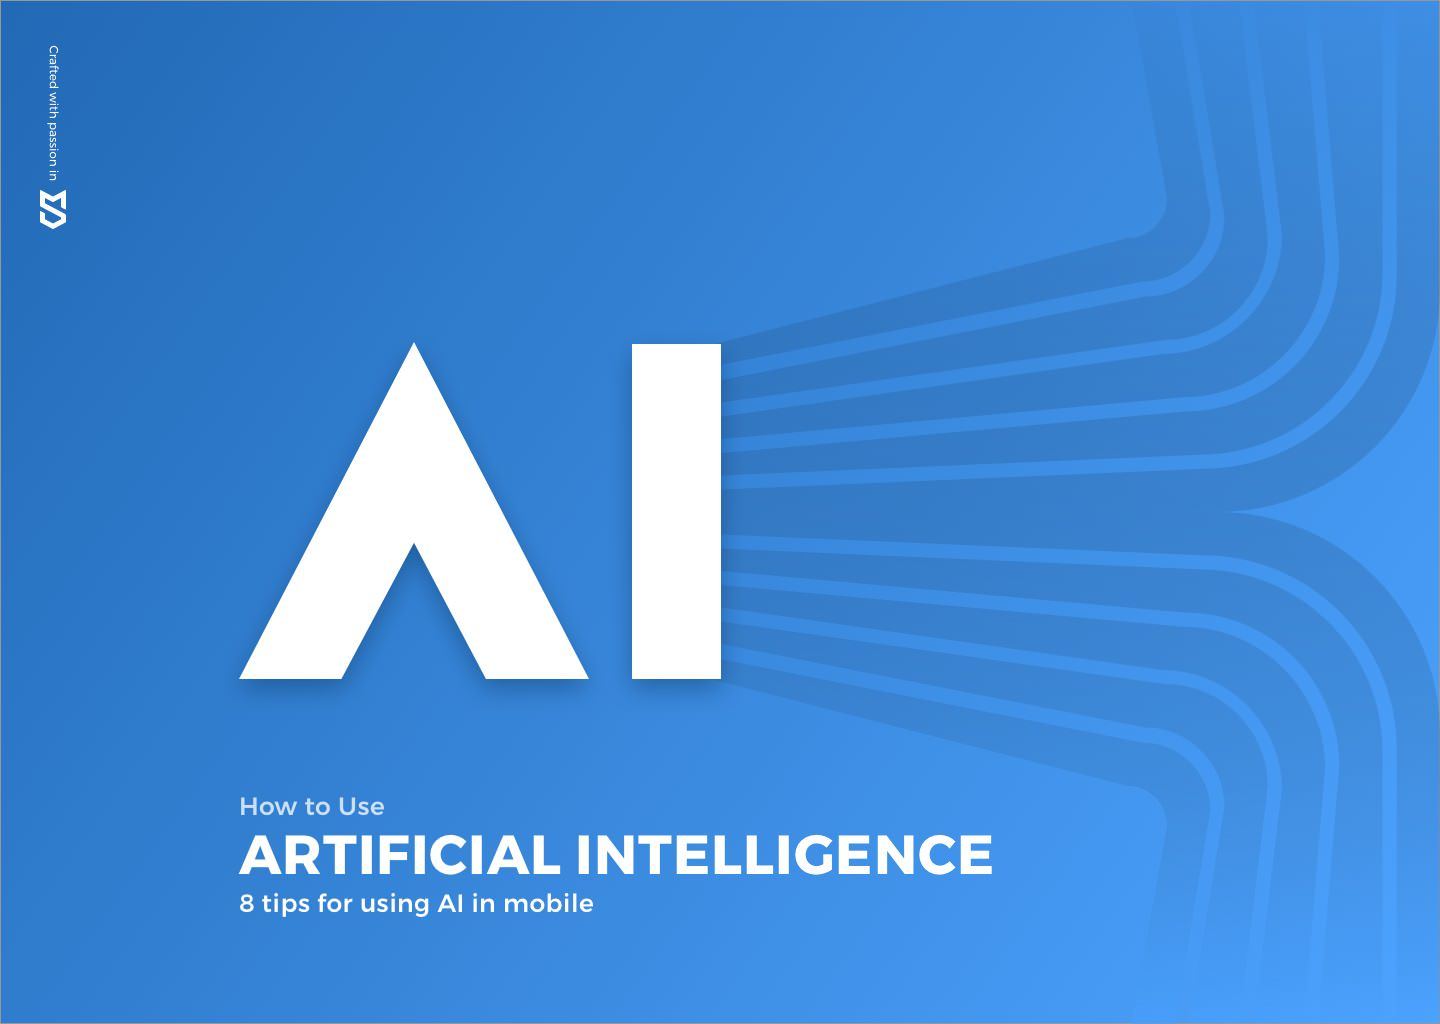 8 Tips to Use Artificial Intelligence (AI) in Mobile Apps